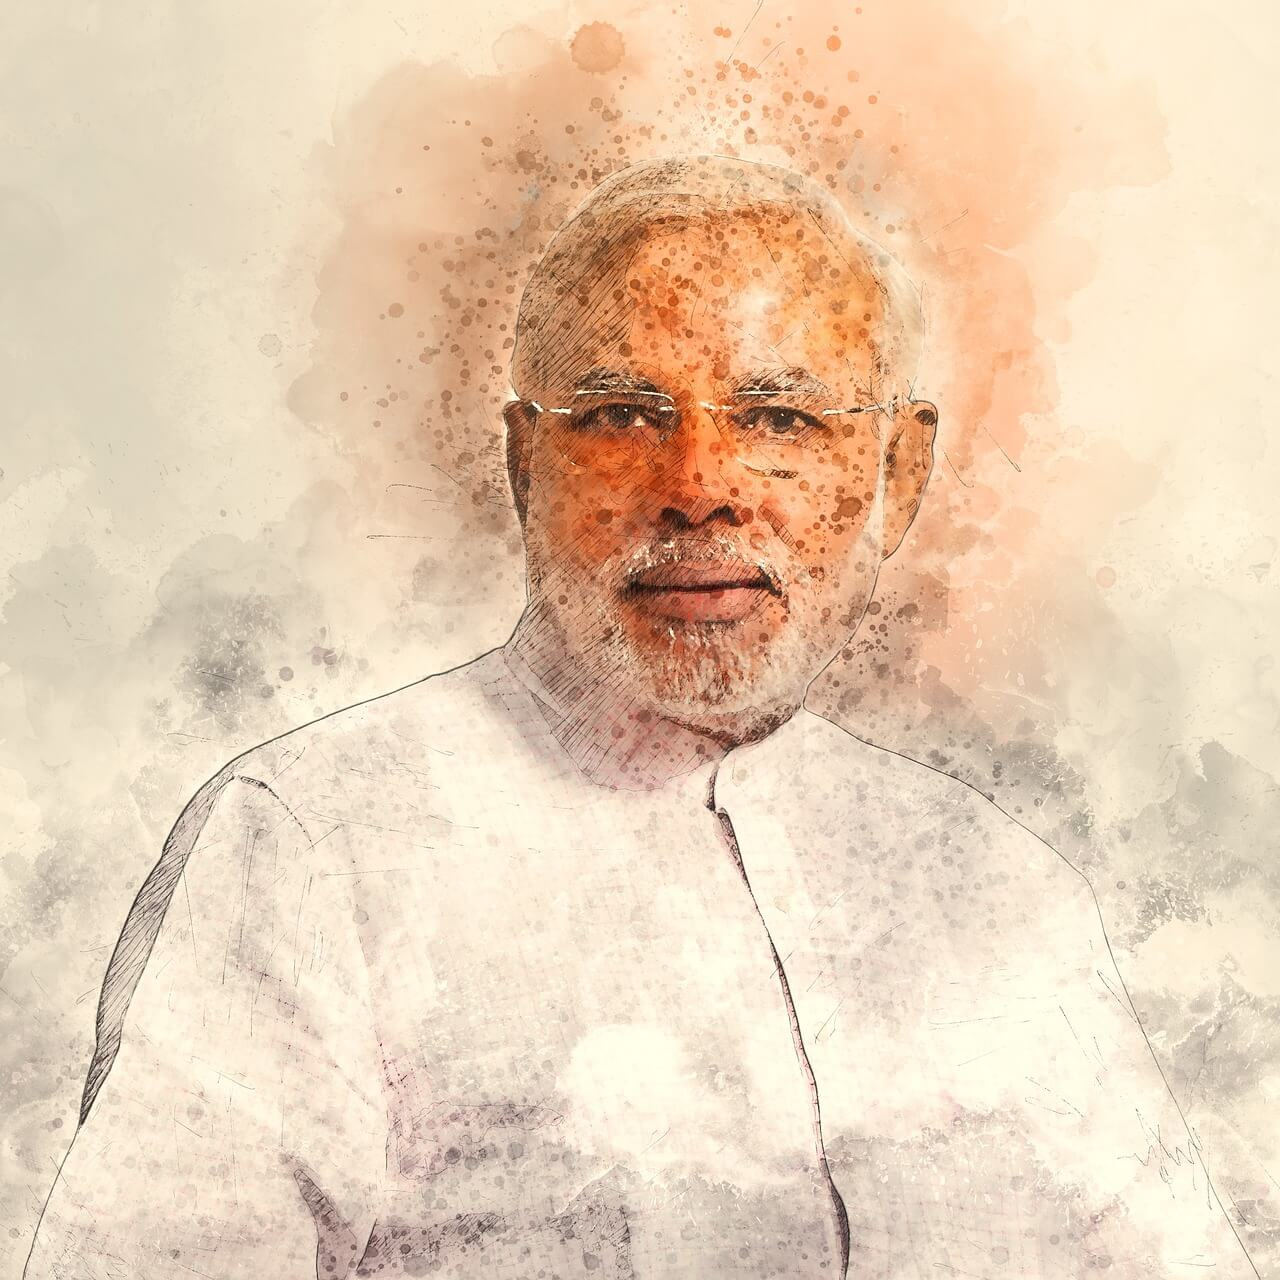 17 Major takeaways for a marketer from Modi's landslide victory